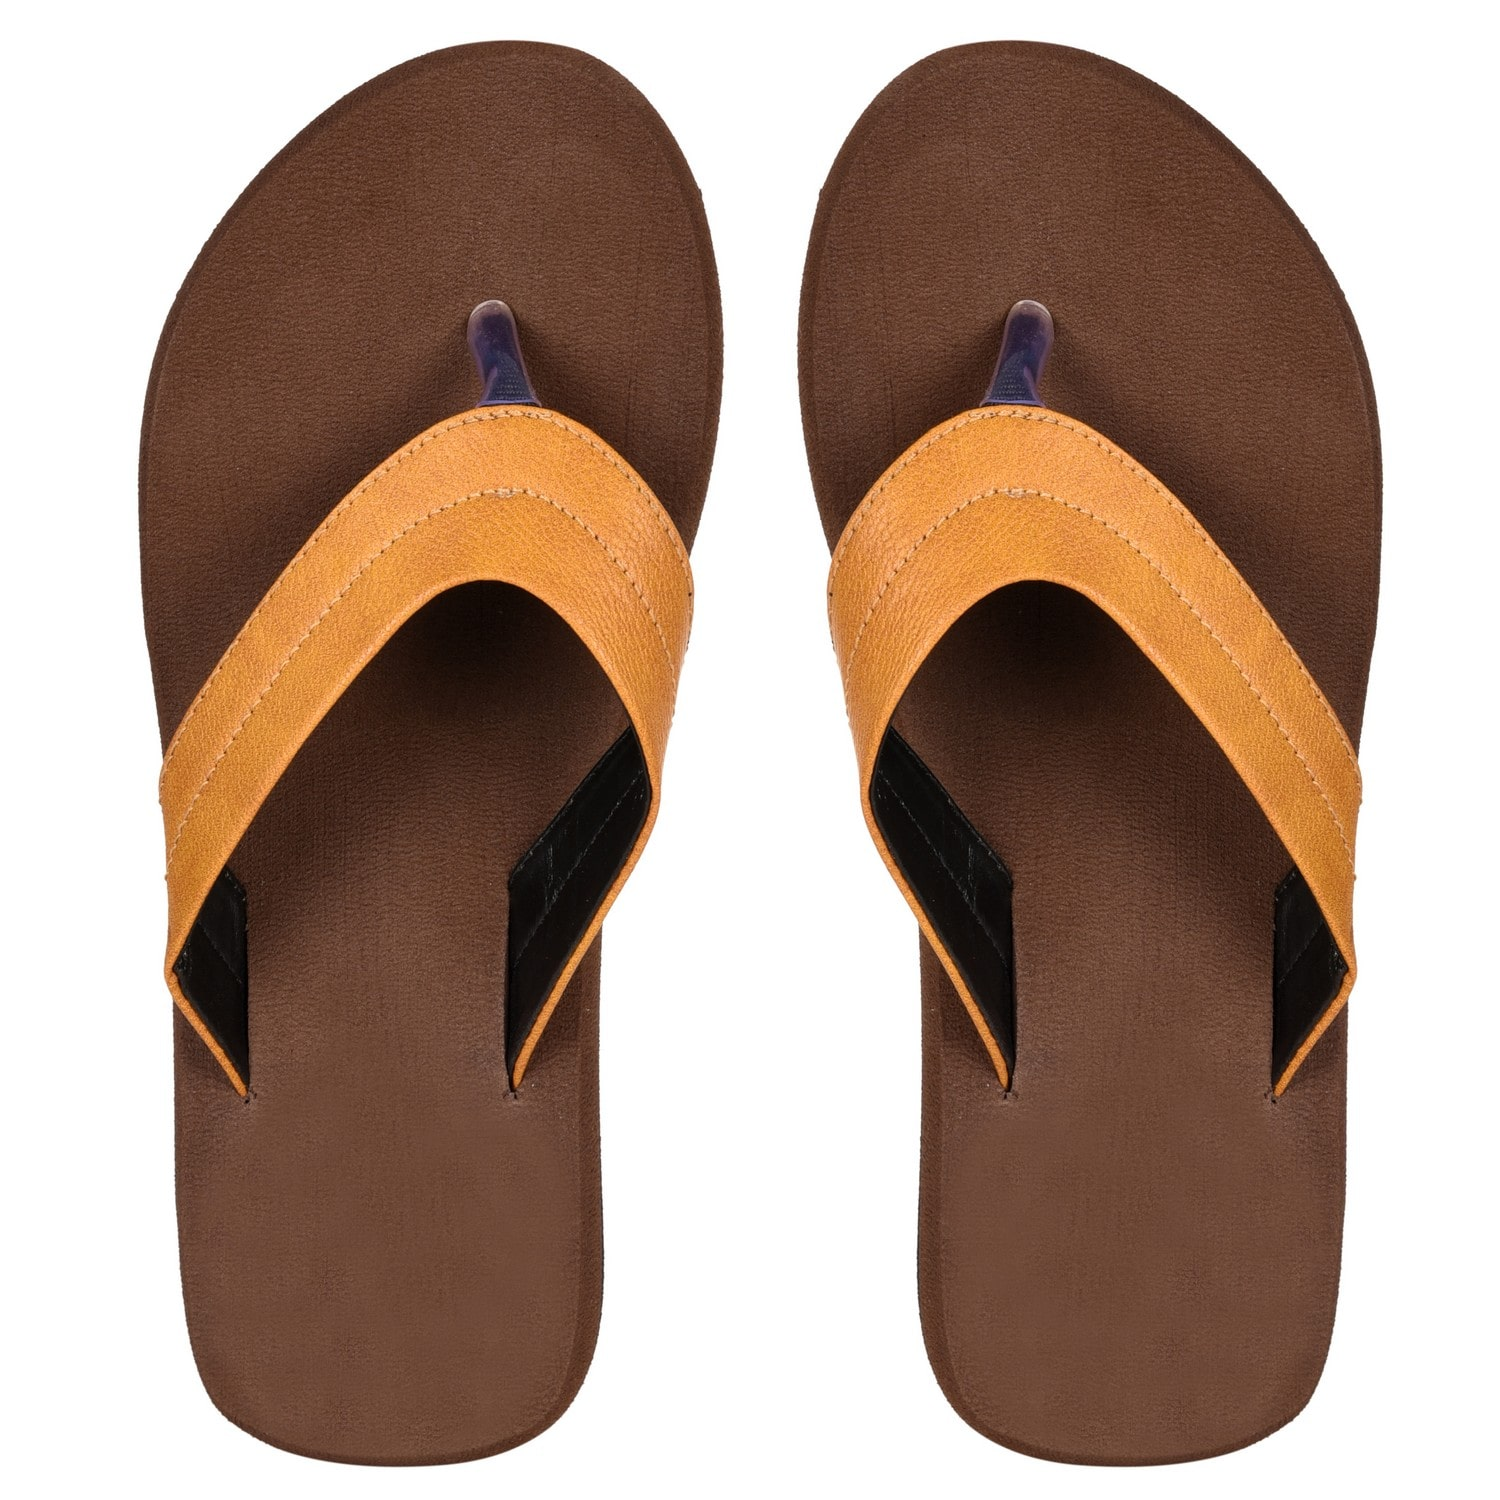 8ae1b01fcd2e Home Men s Fashion Footwear Slippers   Flip Flops.  https   assetscdn1.paytm.com images catalog product